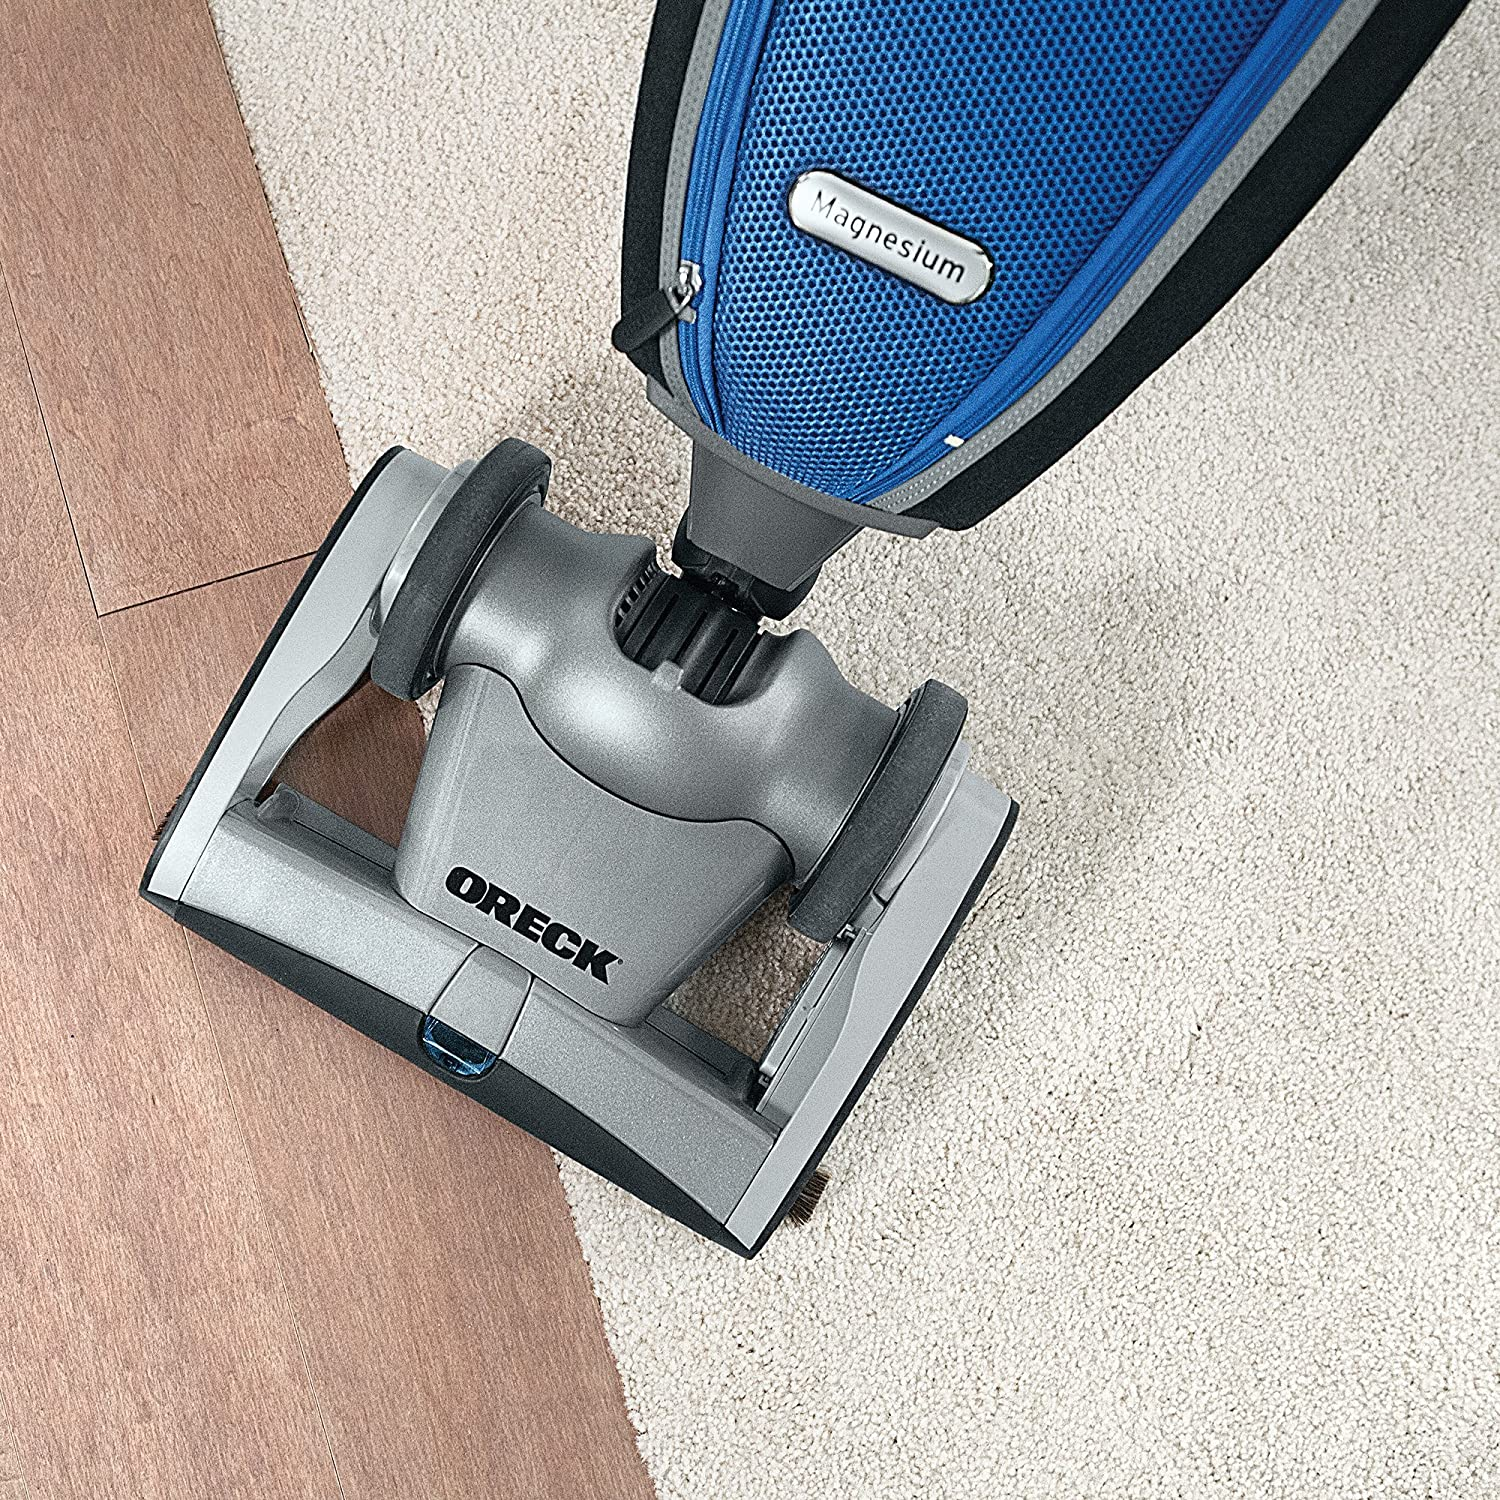 Oreck Magnesium RS Upright Vacuum Cleaner [Energy Class A] LW150